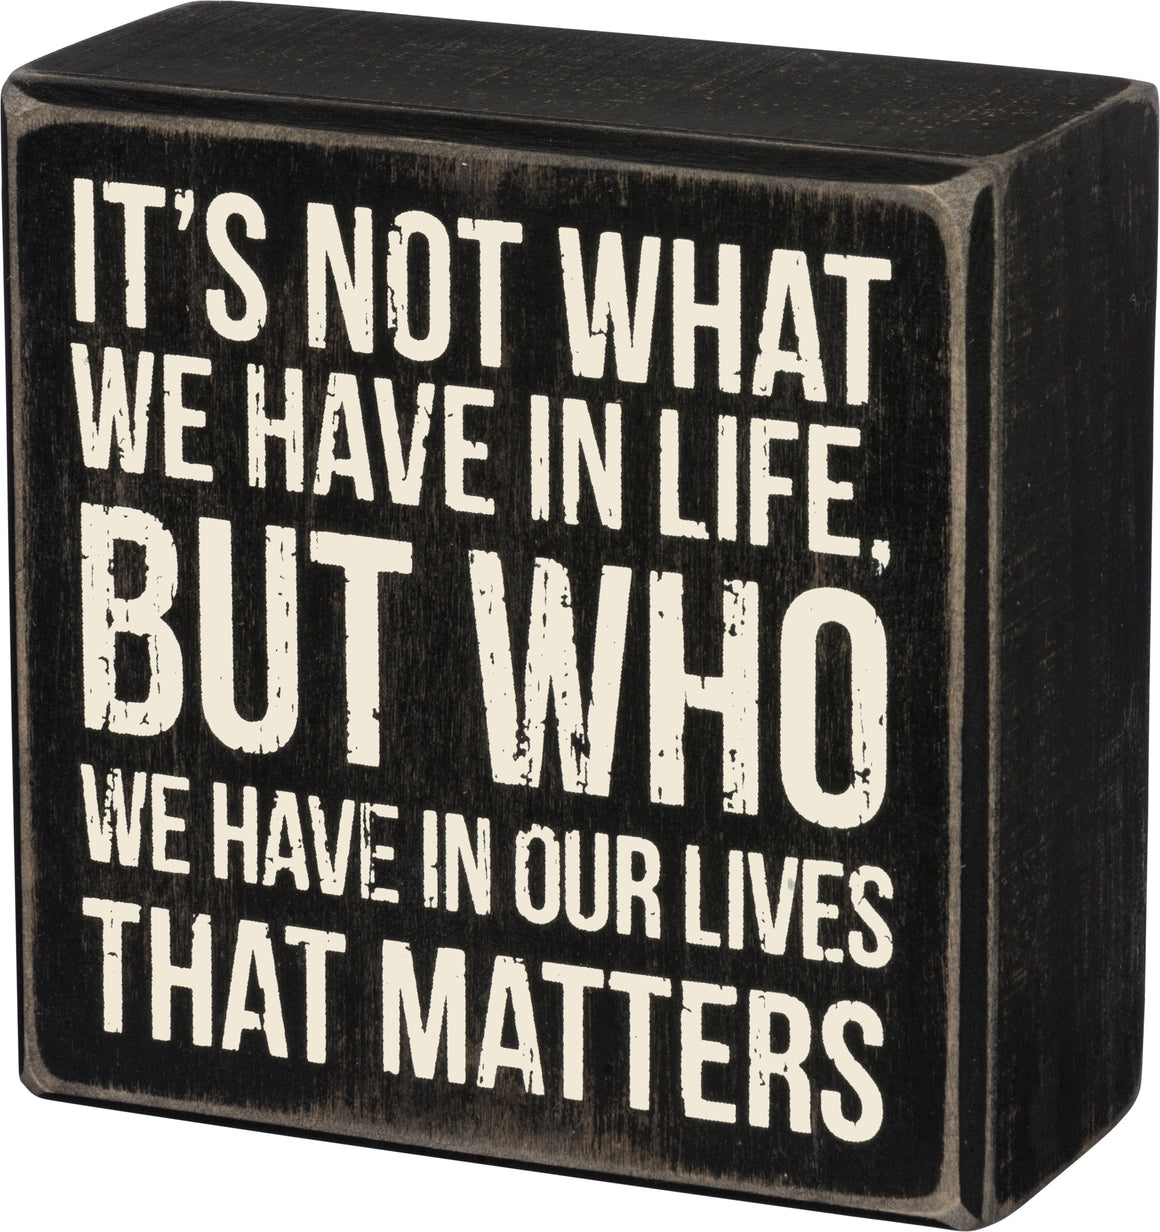 It's Not What We Have in Life, But Who We Have in Our Lives That Matters Box Sign